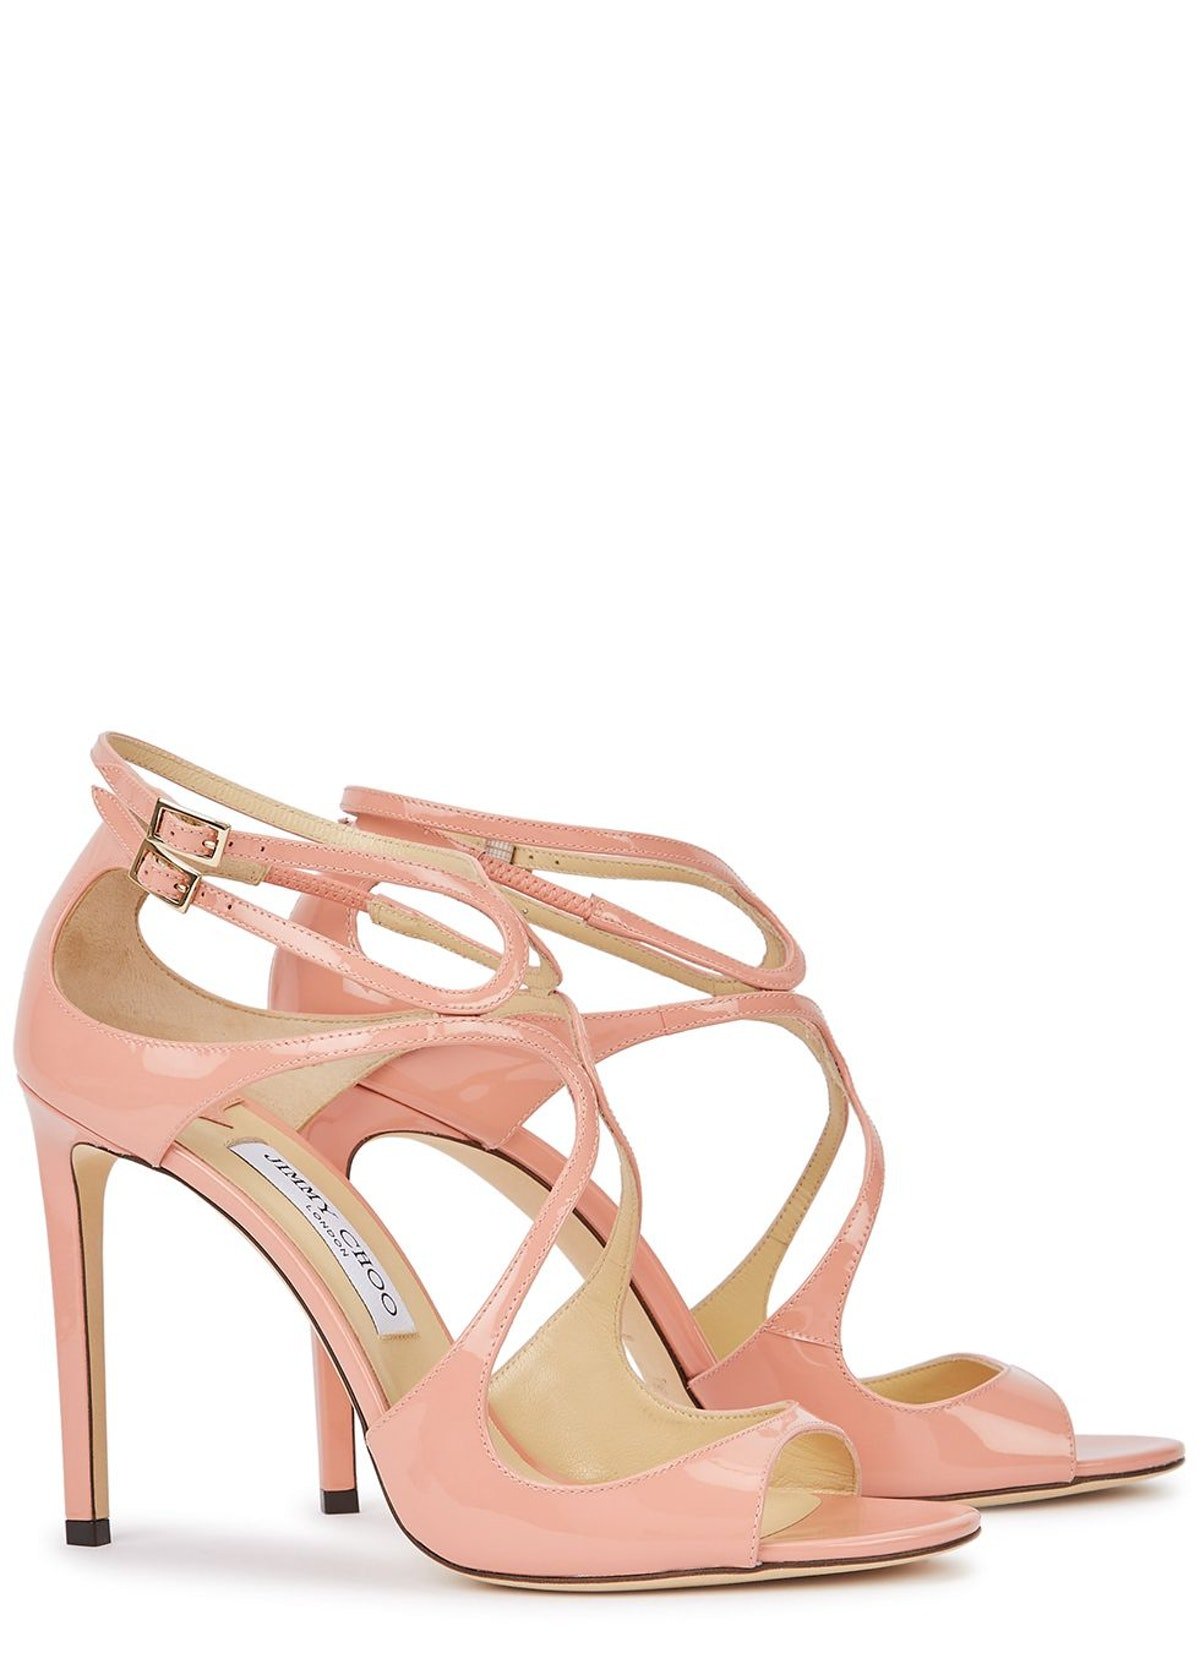 Lang 105 blush cut-out leather sandals: image 1